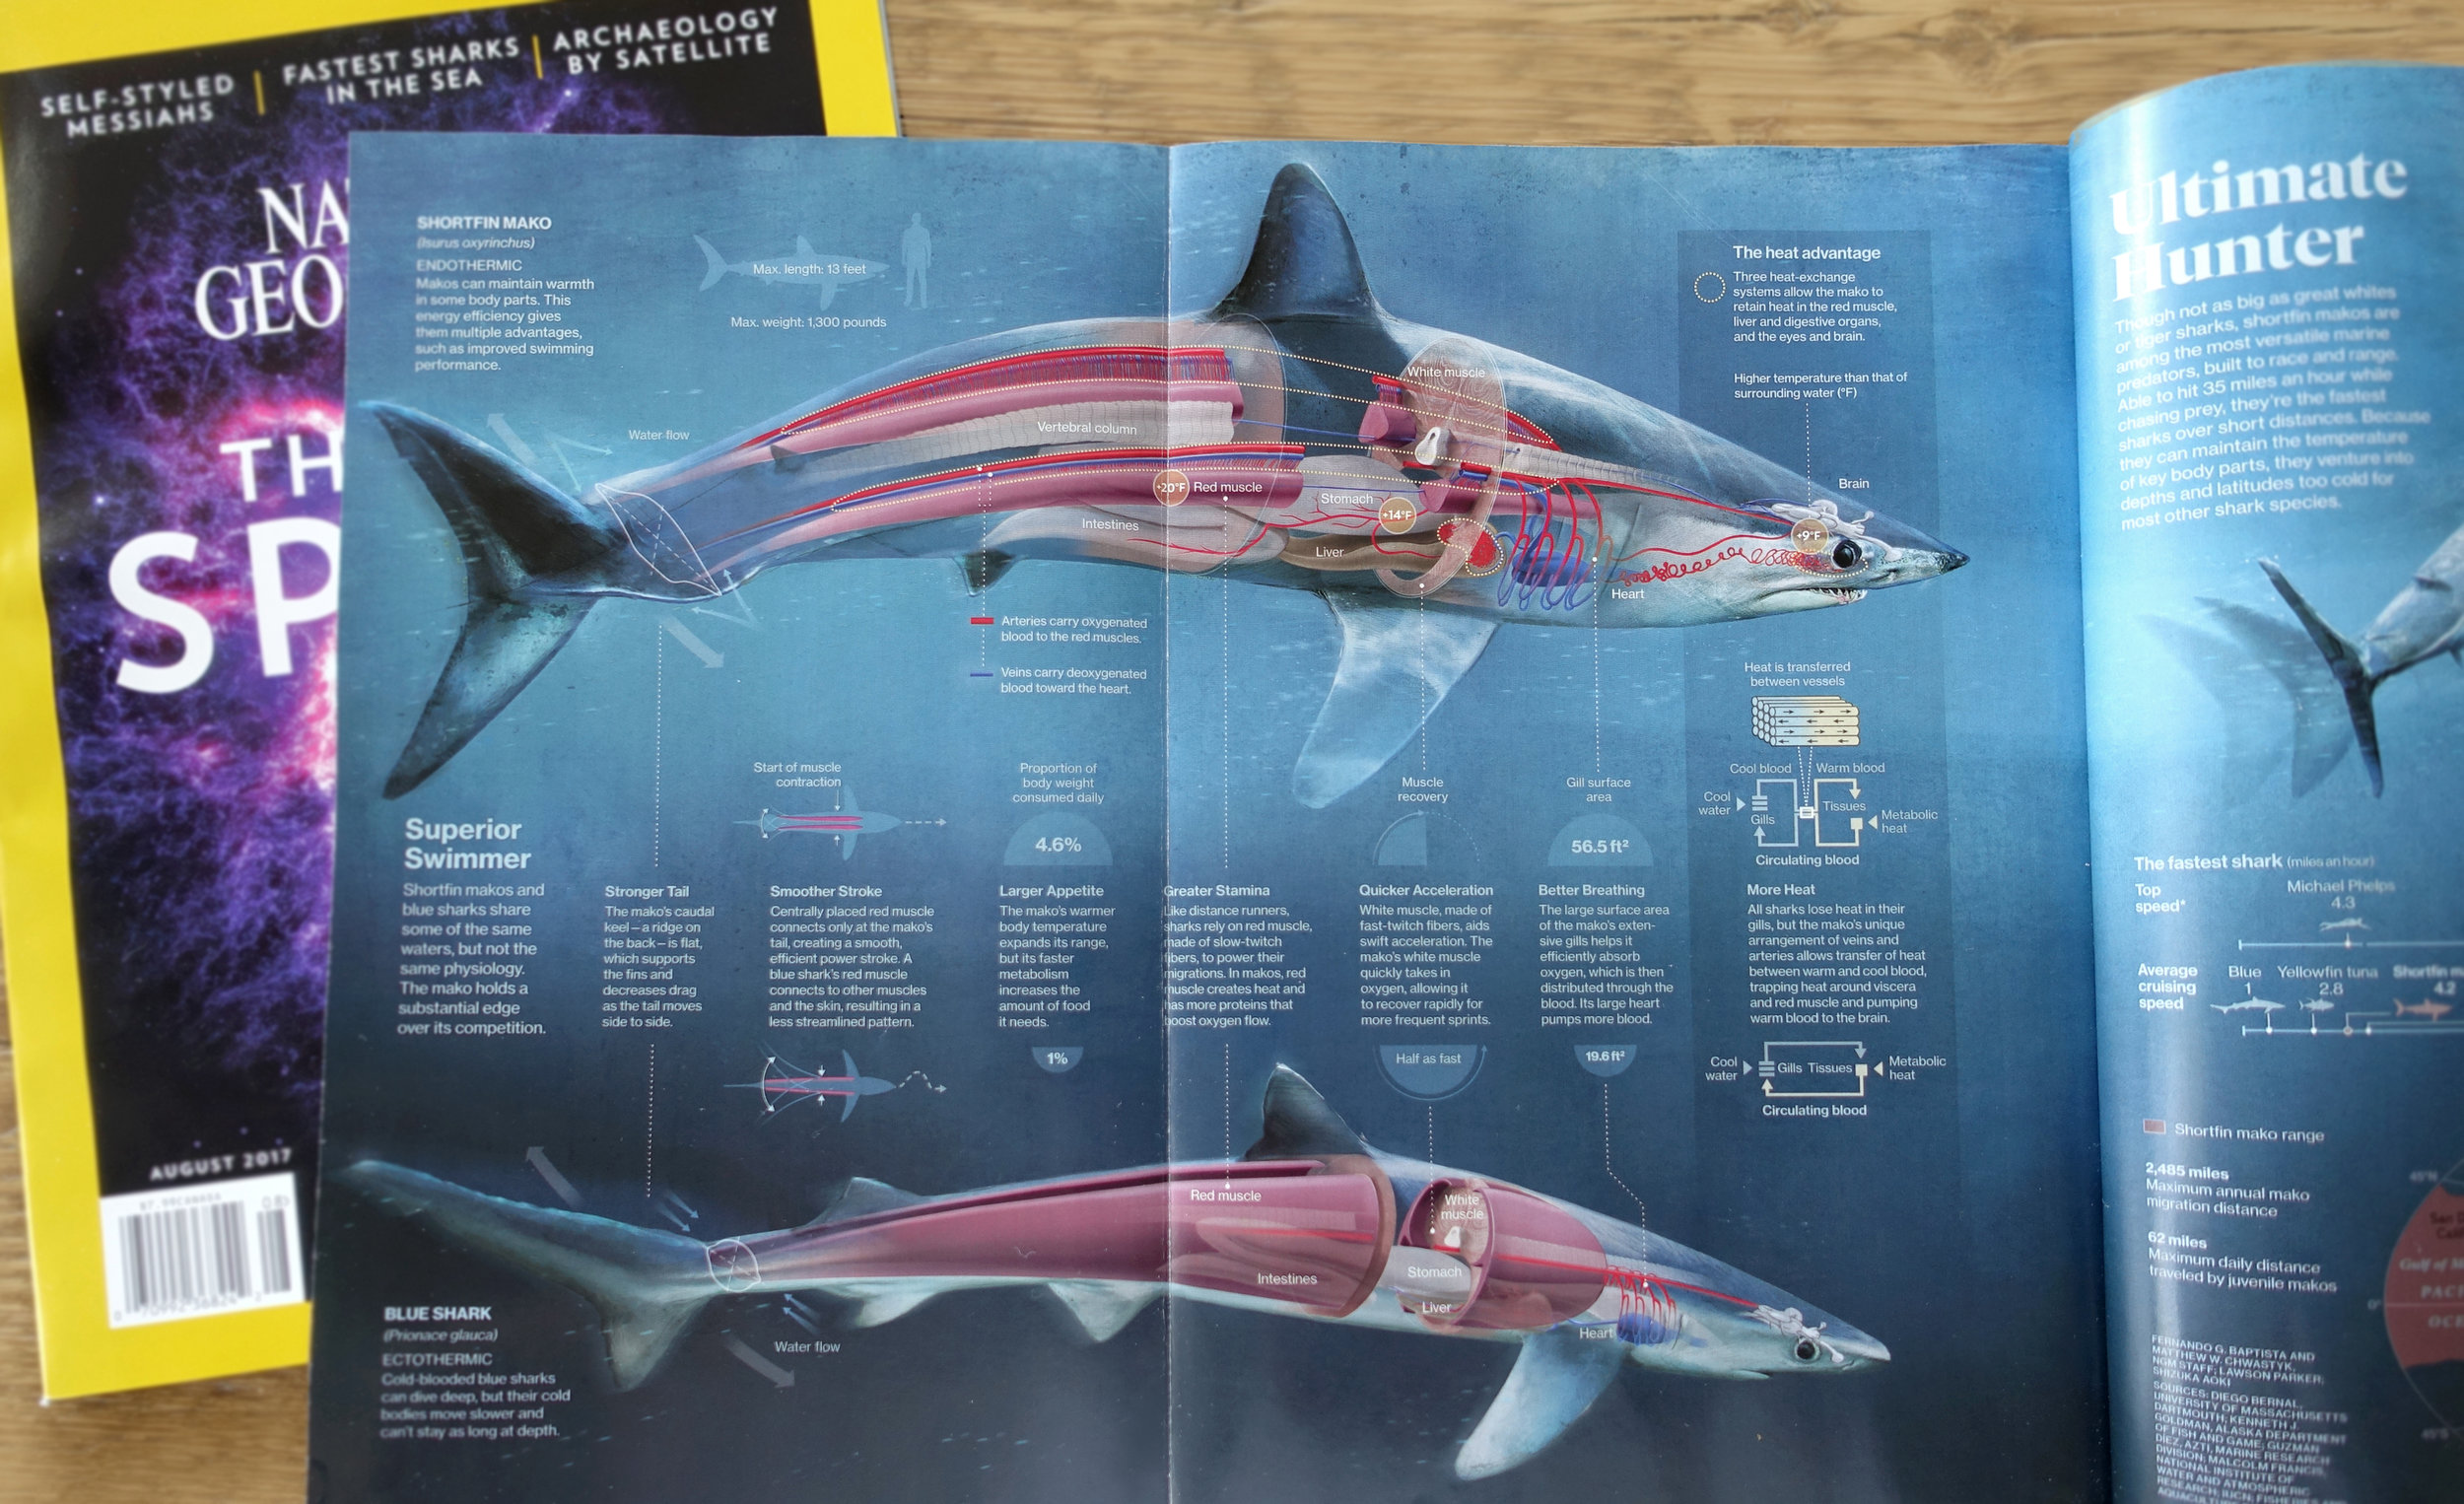 National Geographic centerfold for our illustrations on the FASTEST shark in the ocean, the shortfin Mako!